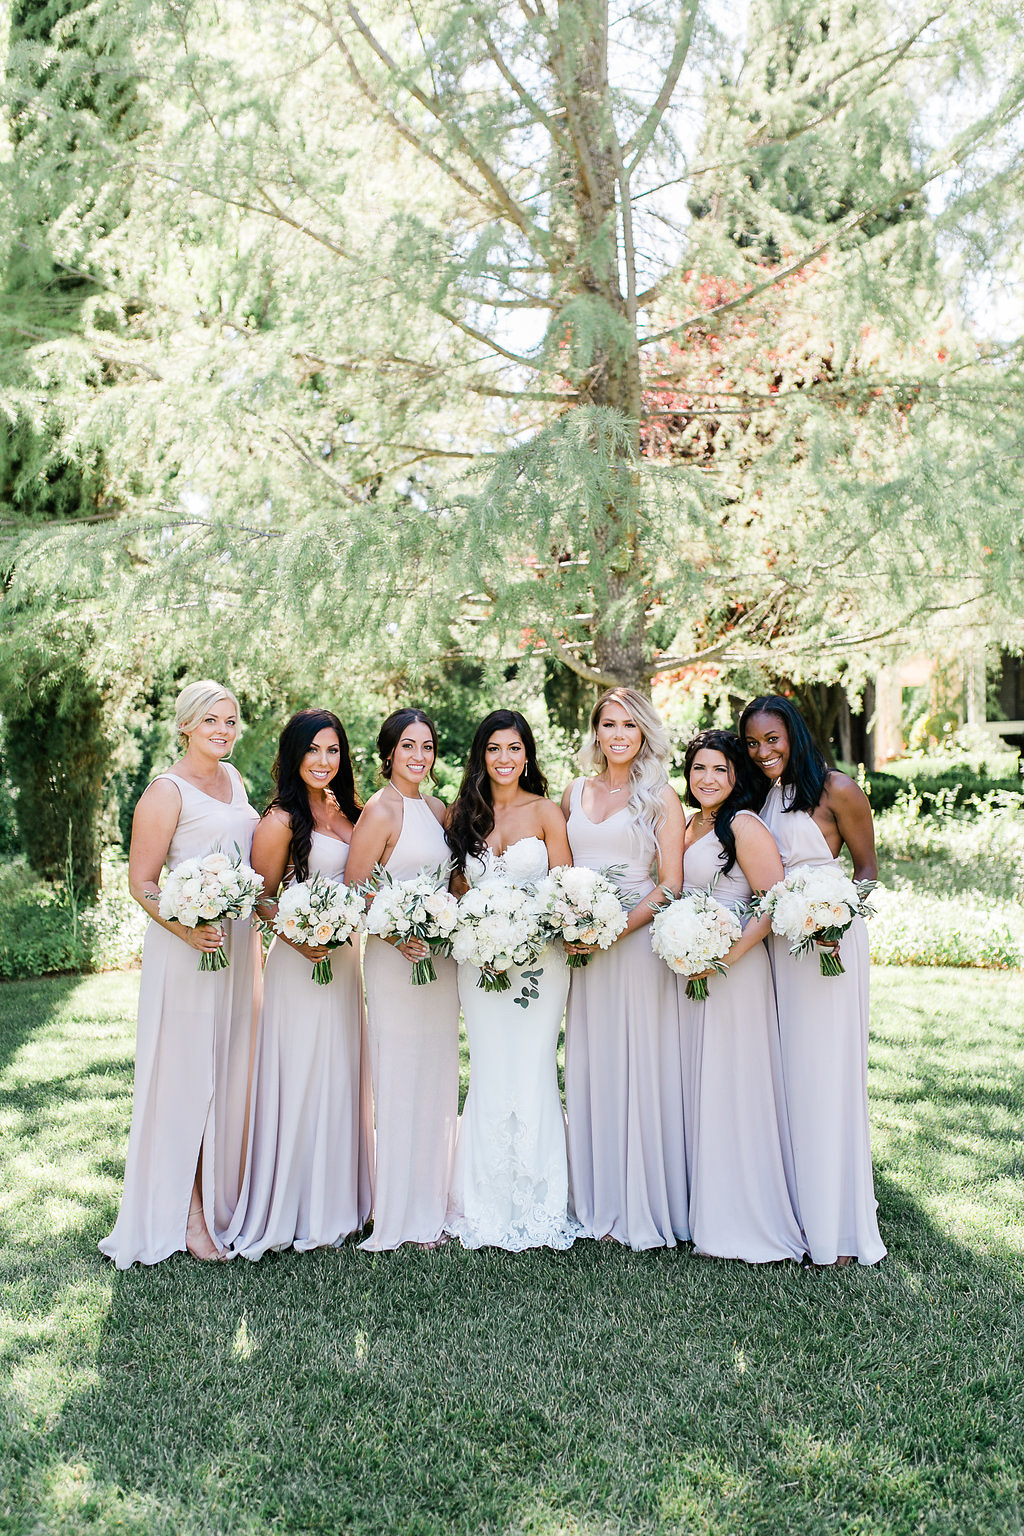 Park Winters Summer Wedding | Bridesmaids | Nude Bridesmaids Dress